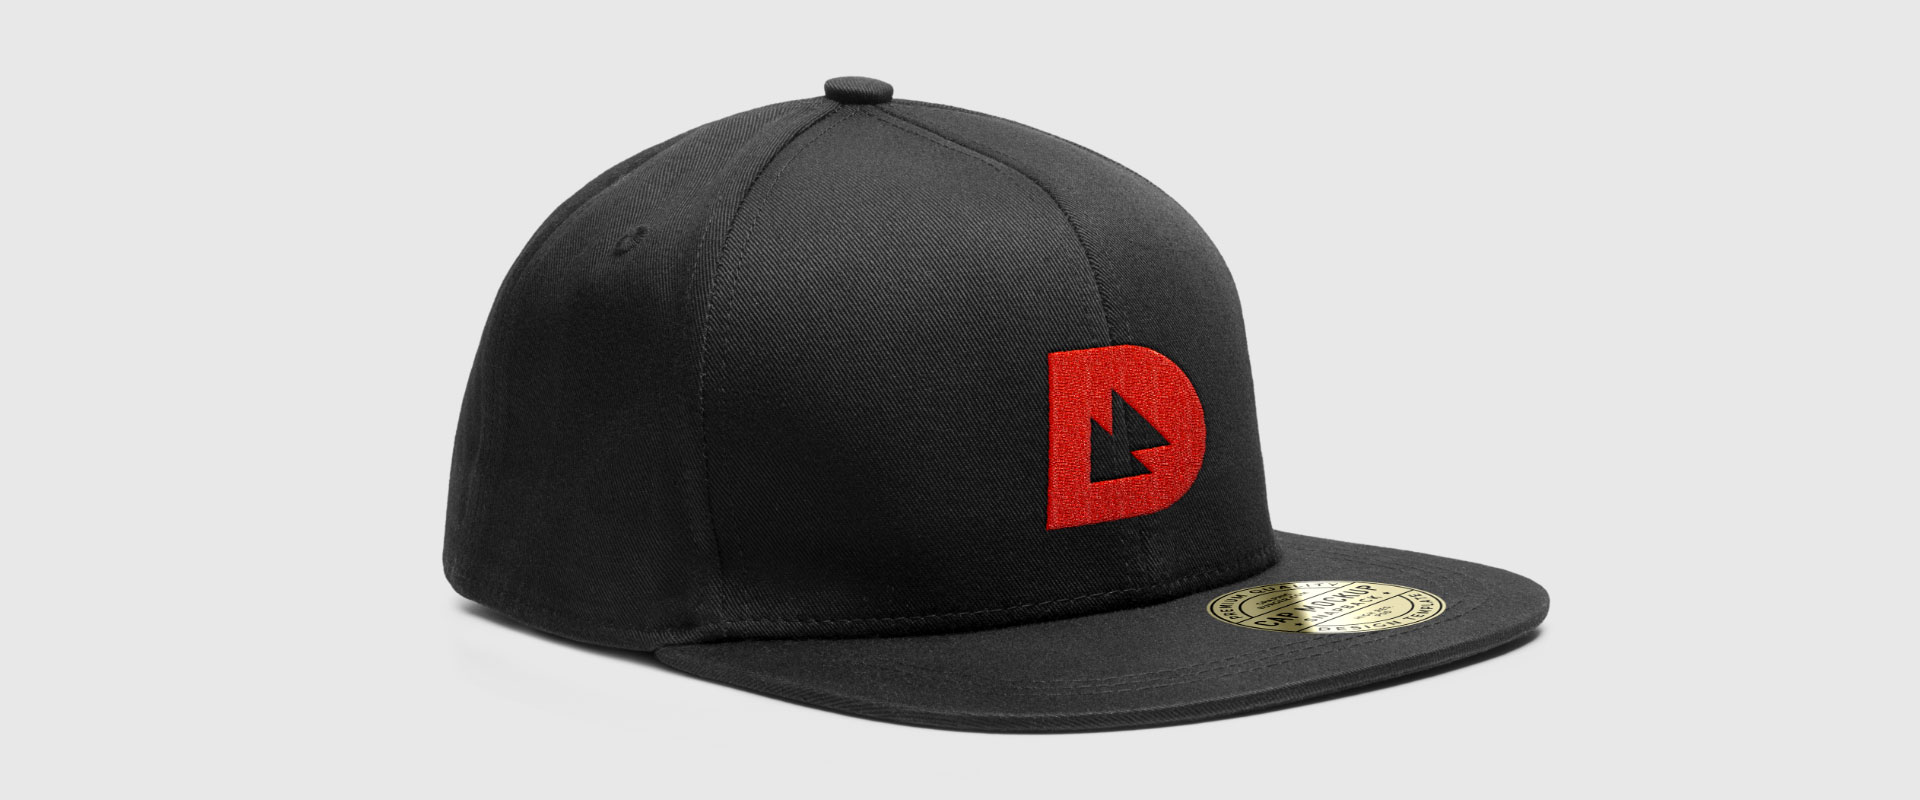 dialled - basecap